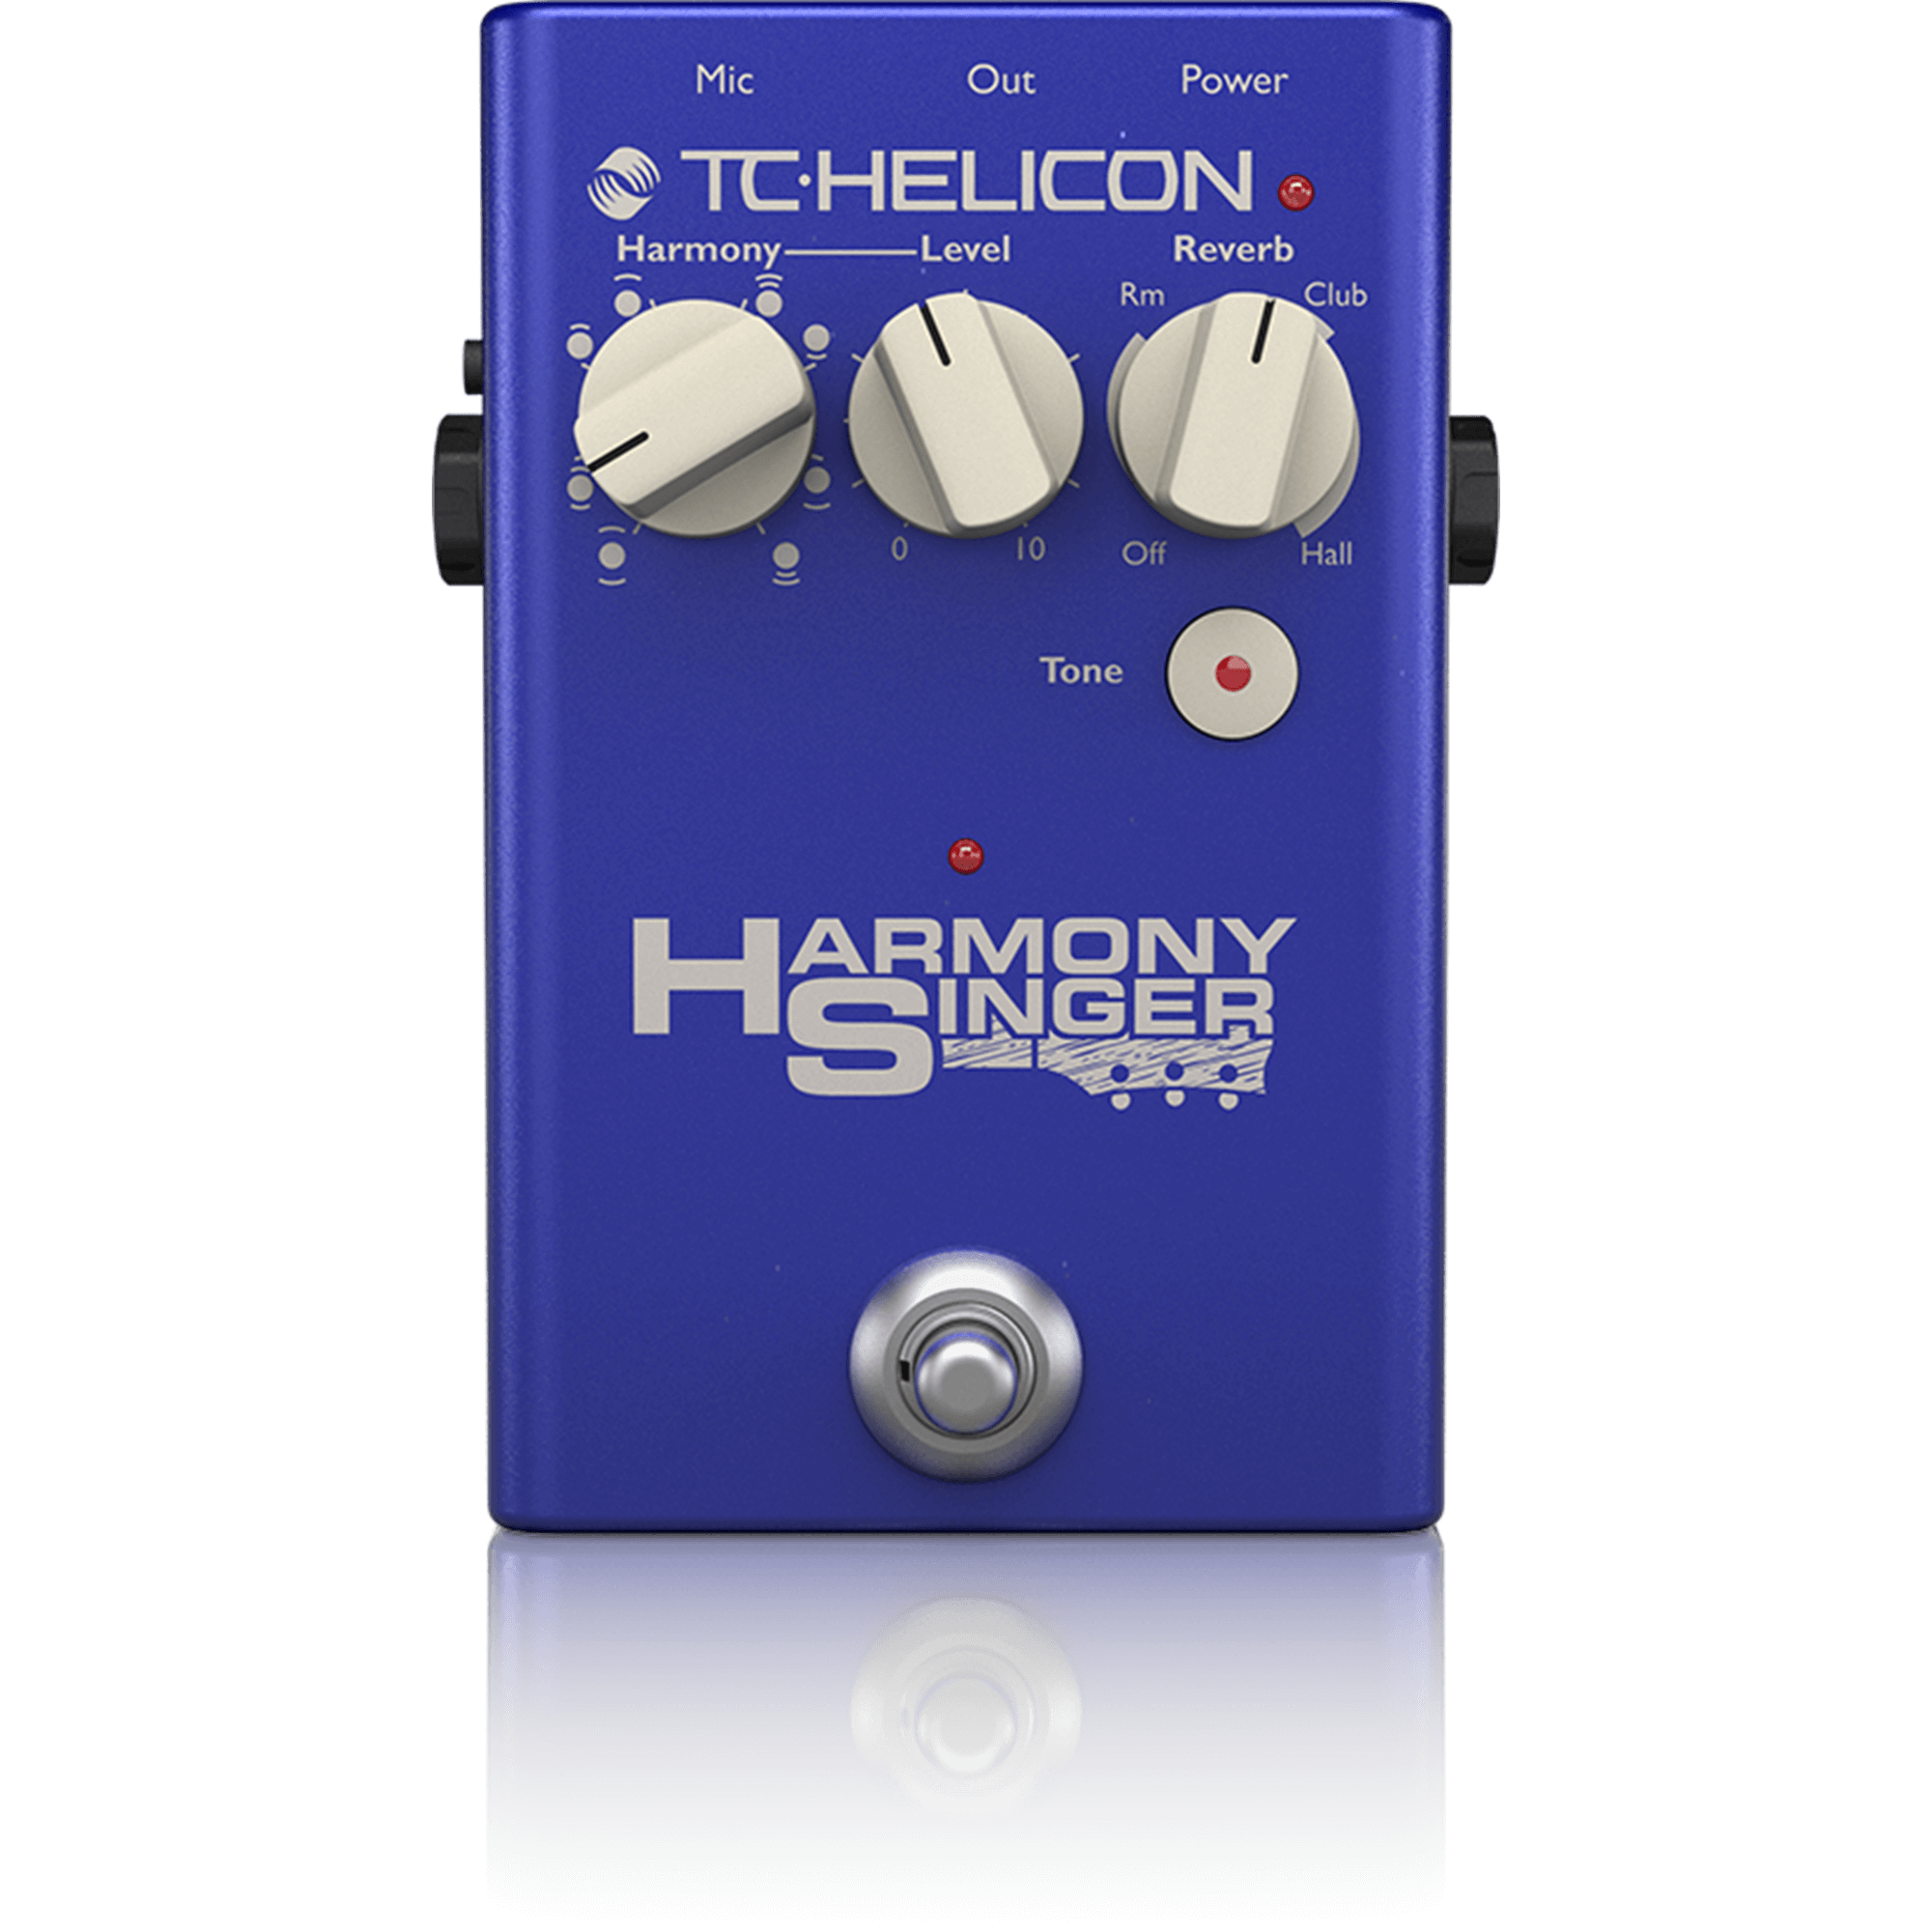 TC Helicon Harmony Singer 2 Review, best harmony pedal for vocals